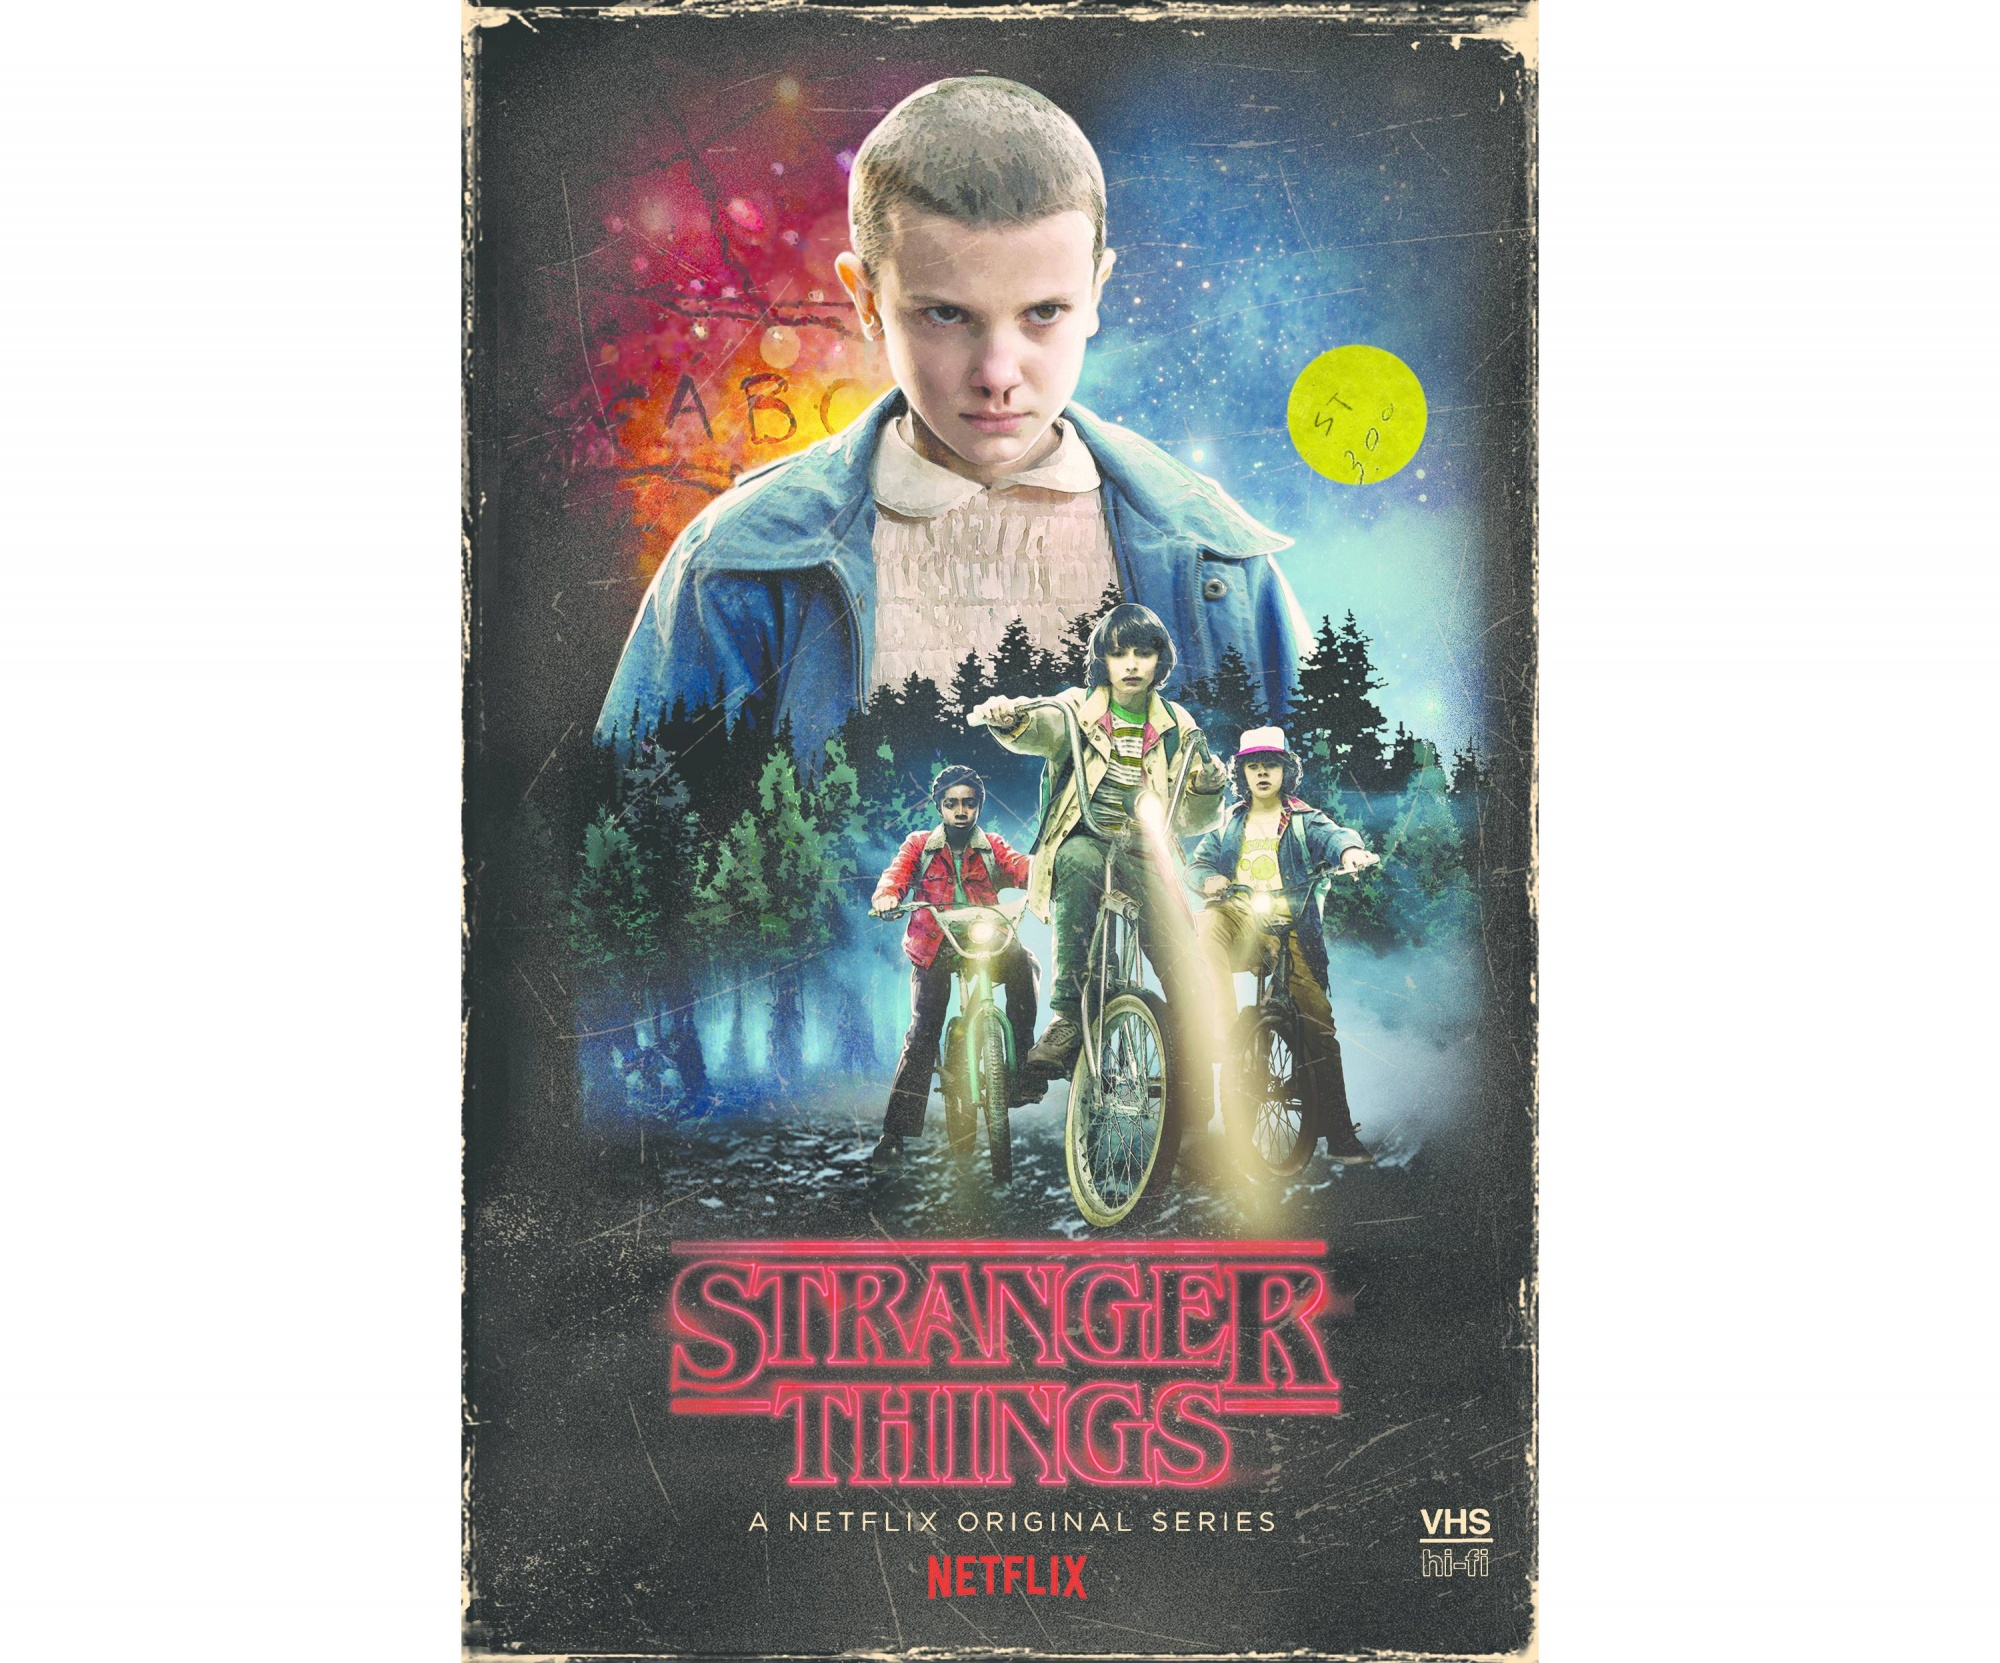 Stranger Things Season 1 4-disc DVD / Blu-Ray Collector's Edition Box Set (Exclusive VHS Box Style Packaging) by Unbranded, ISBN: 0191764203360